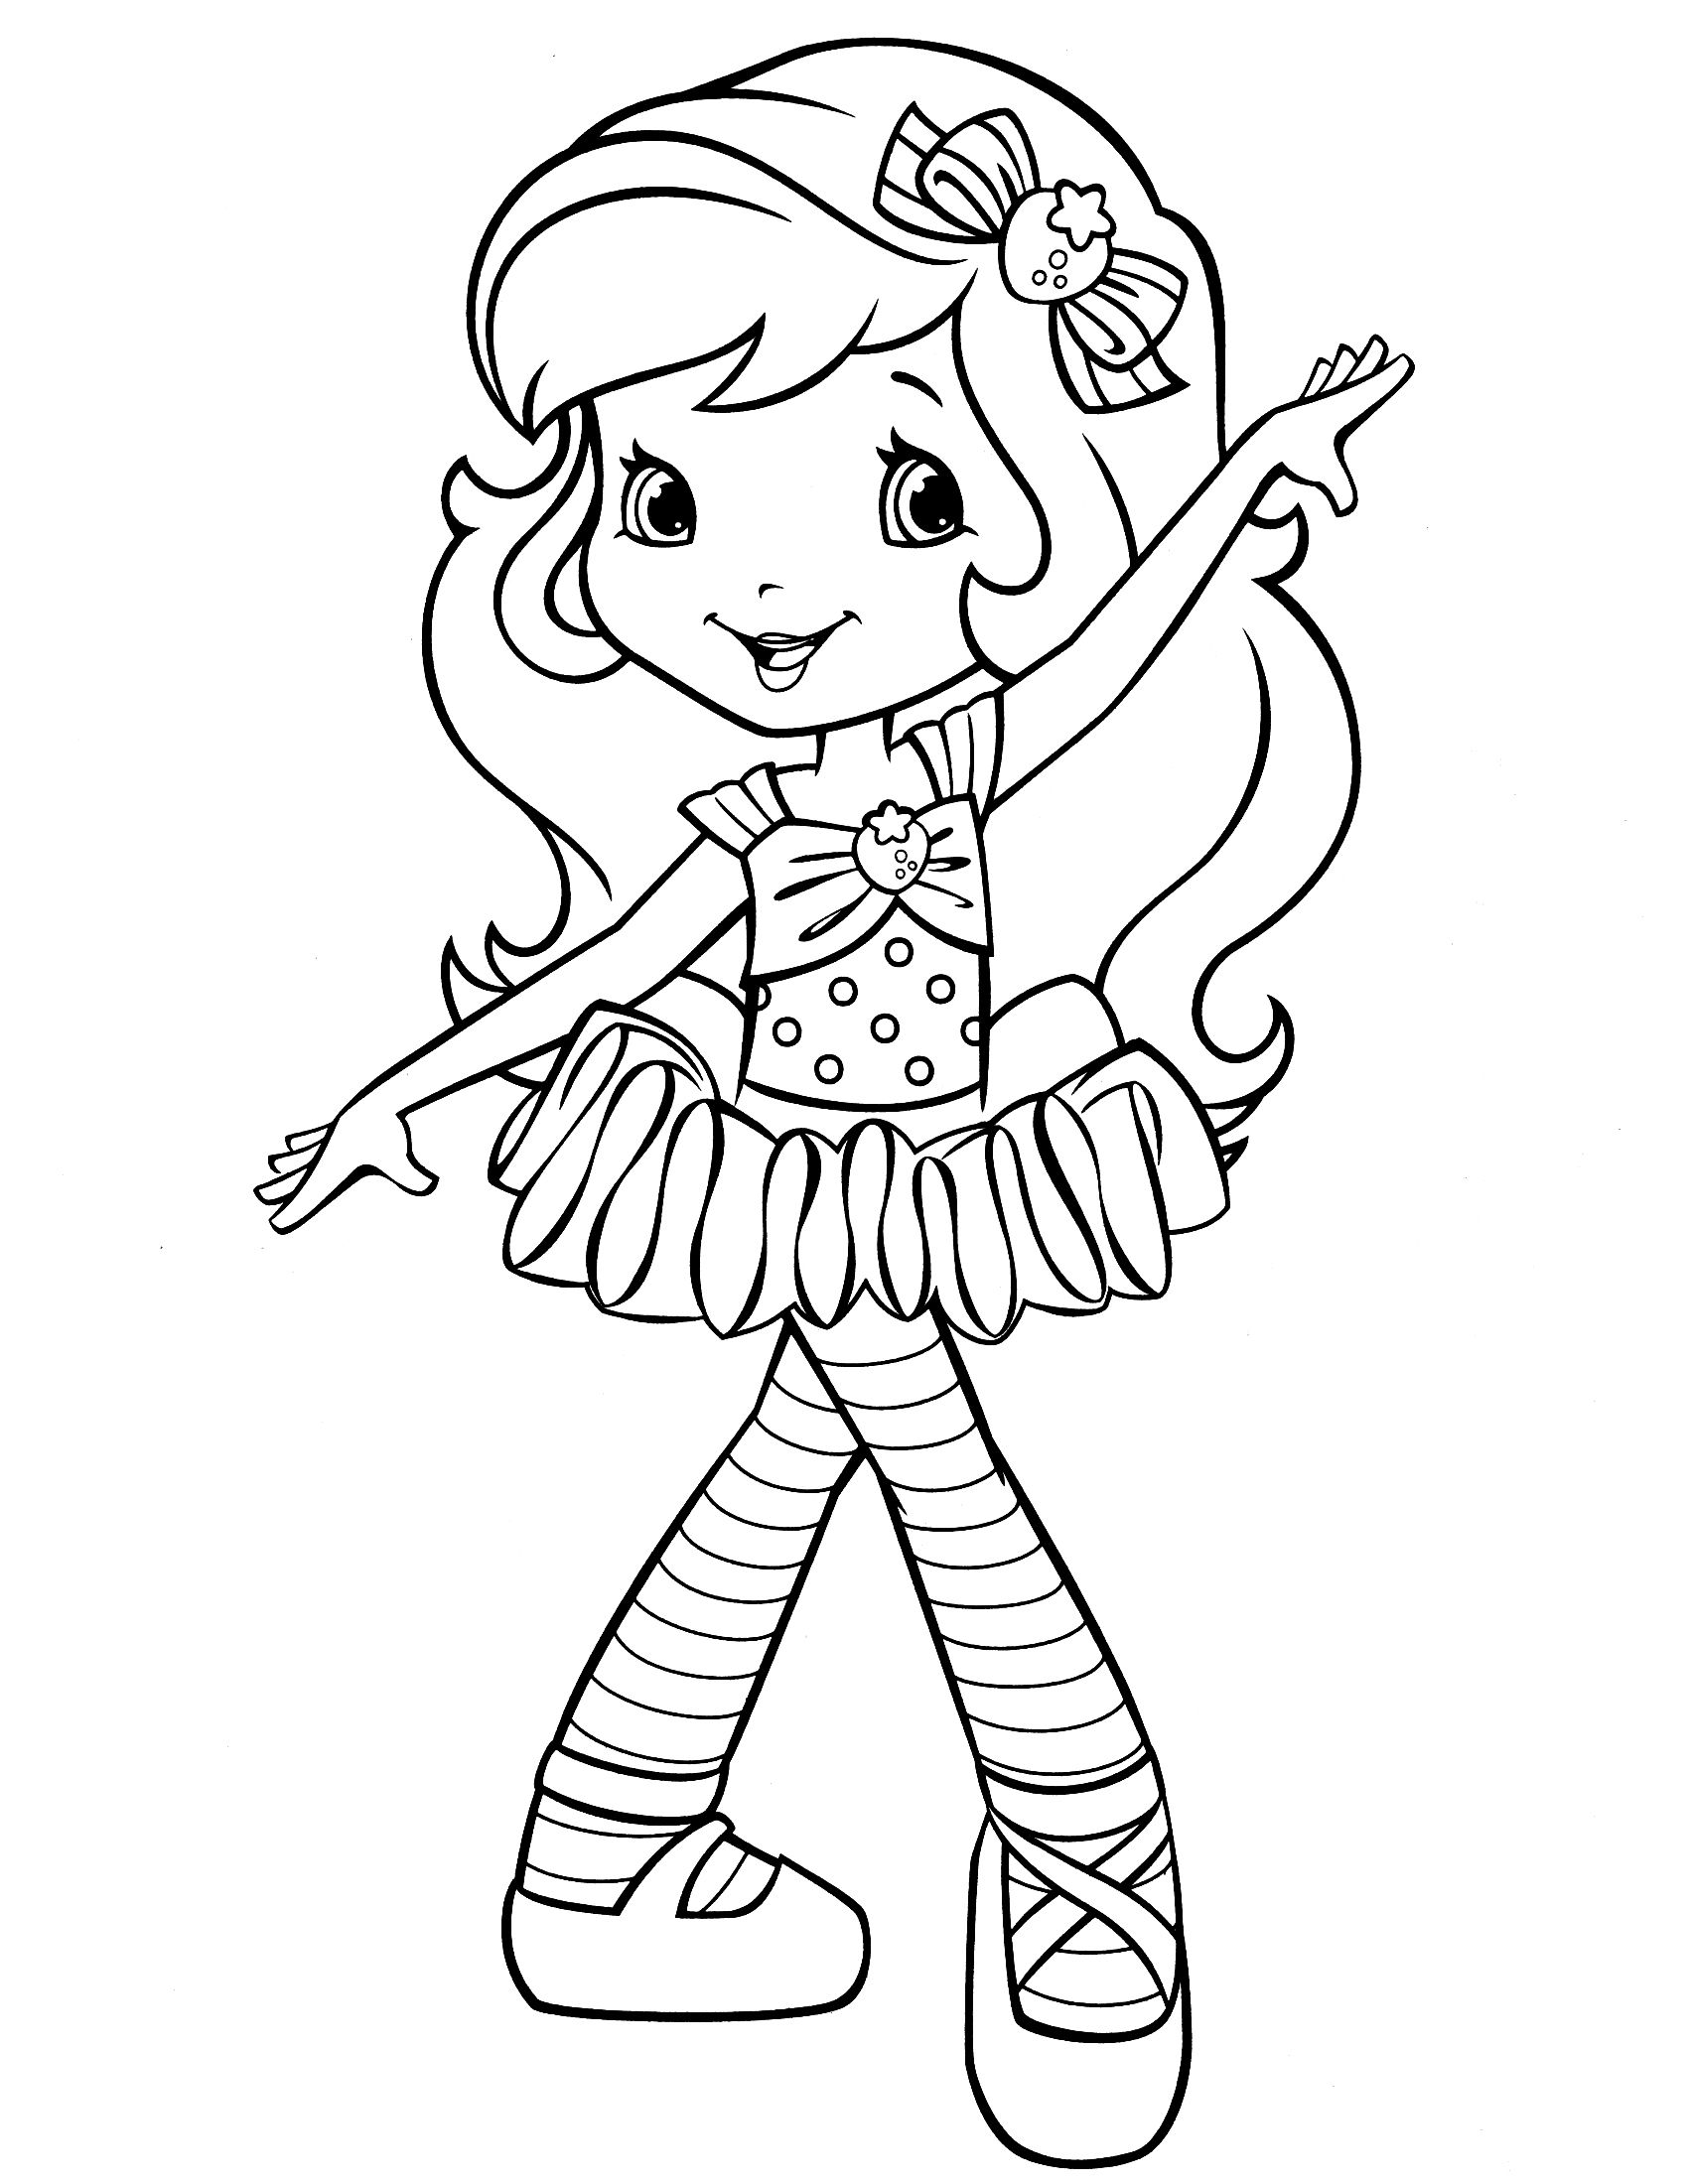 strawberry shortcake coloring page … | Pinteres…